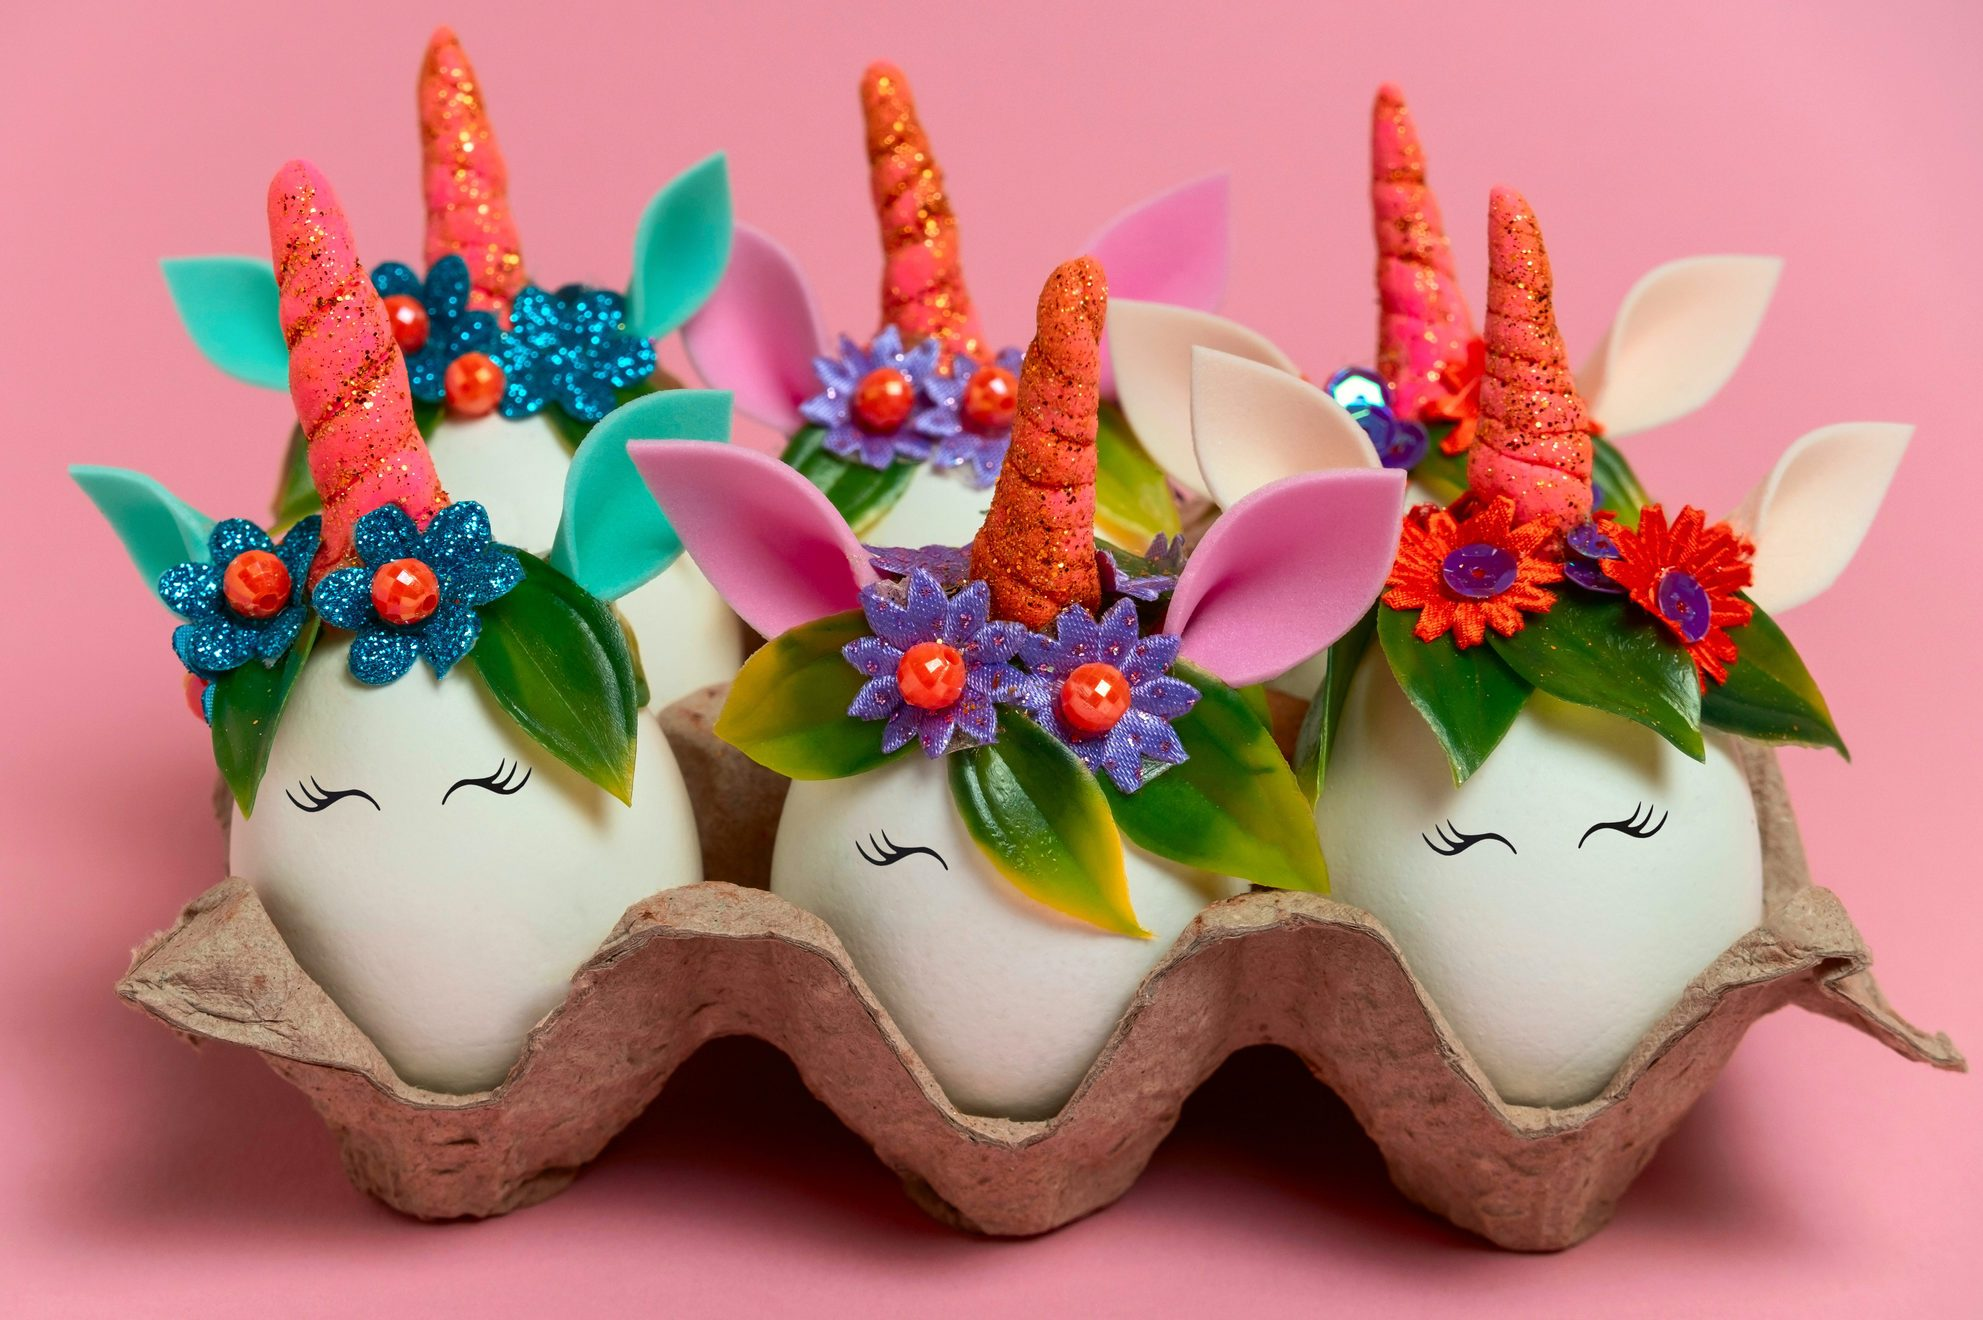 unusual Easter unicorn eggs on a pink background